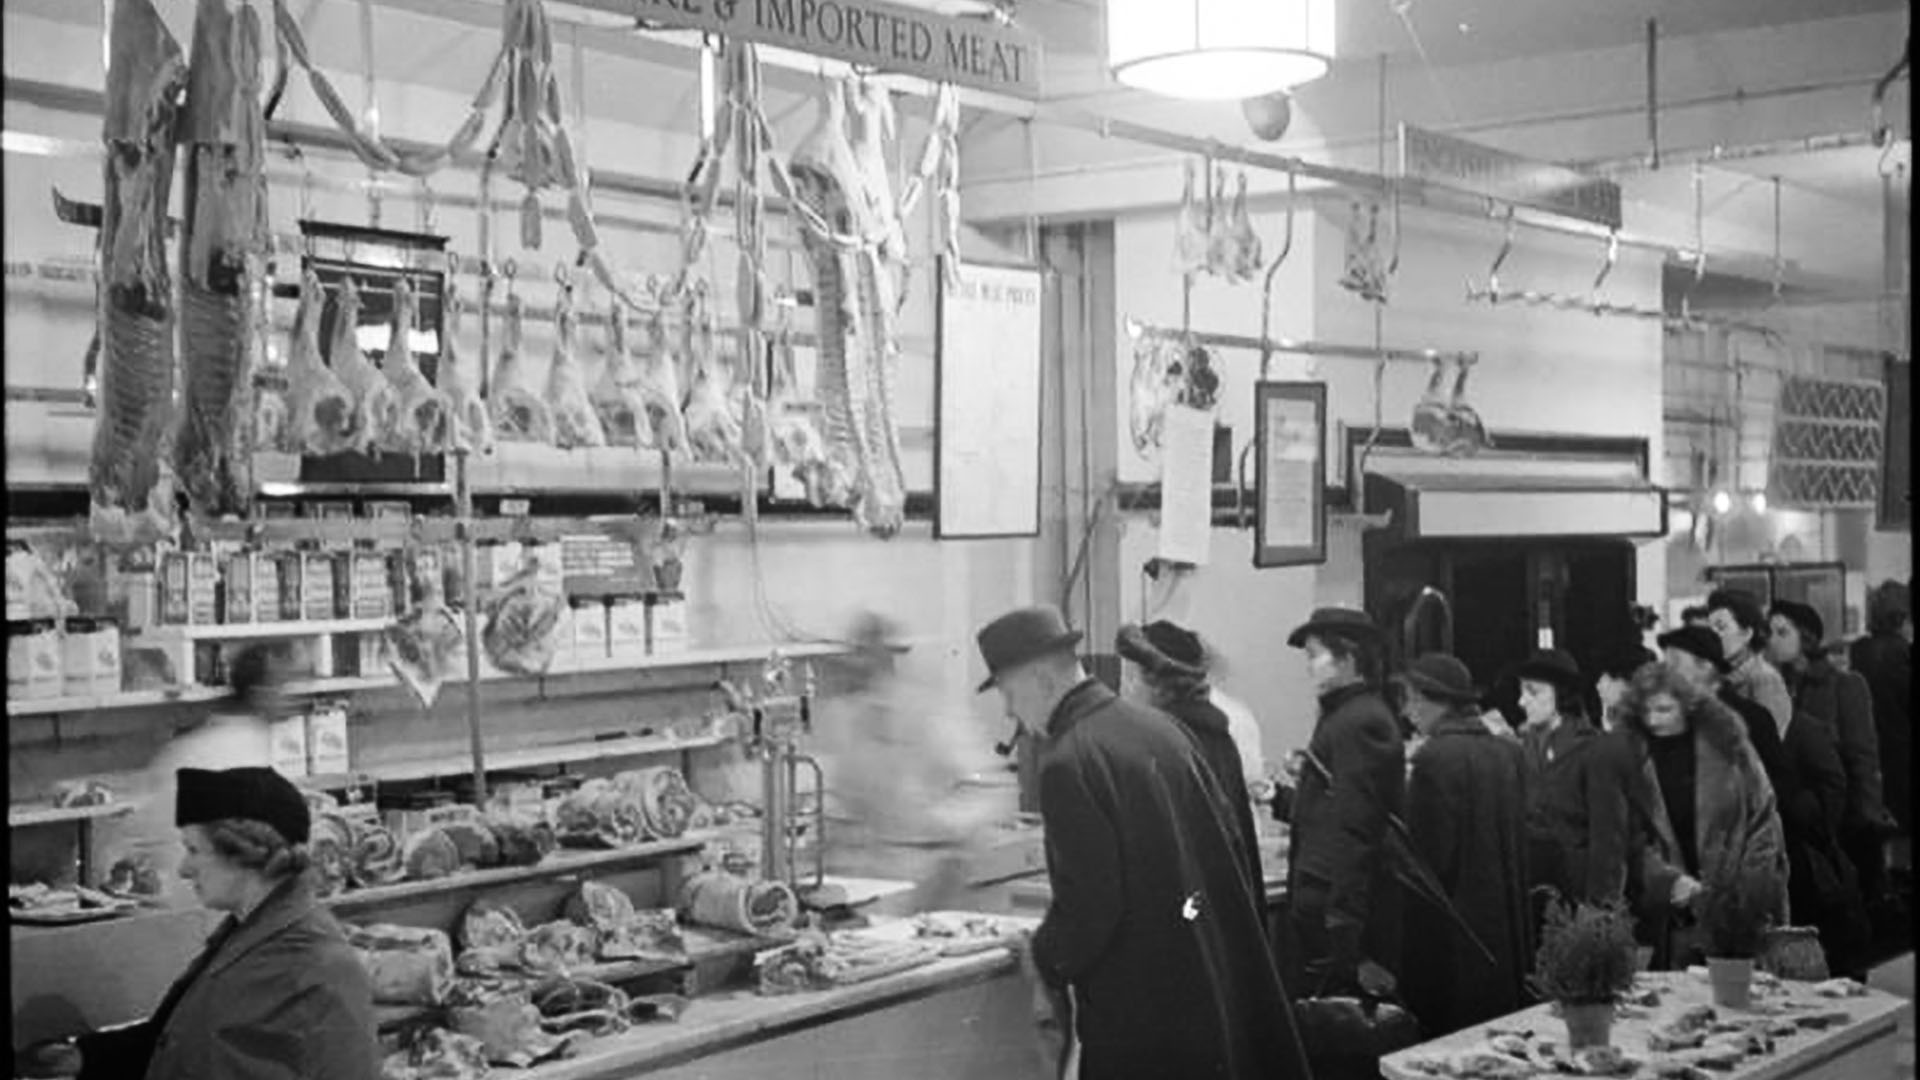 Buying meat in wartime